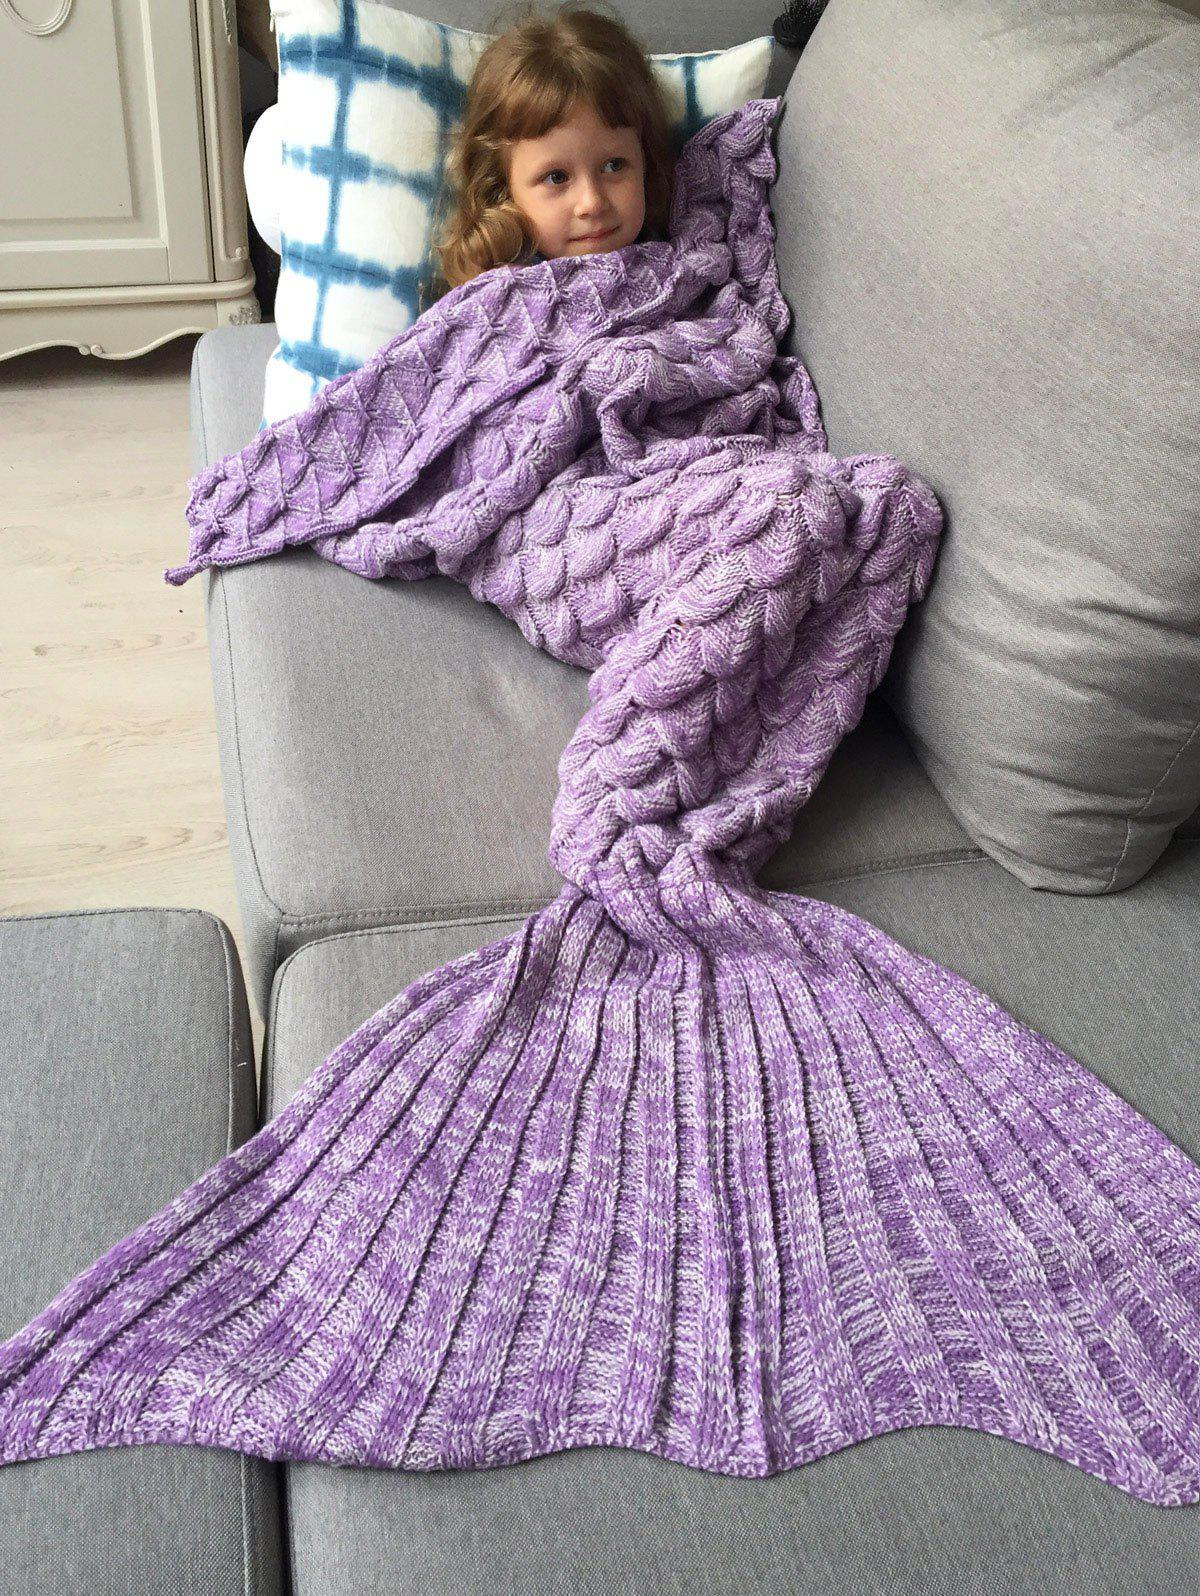 Kids Sleeping Bag Fish Scales Design Knitted Mermaid Blanket thicken soft knitted sleeping bag kids wrap mermaid blanket